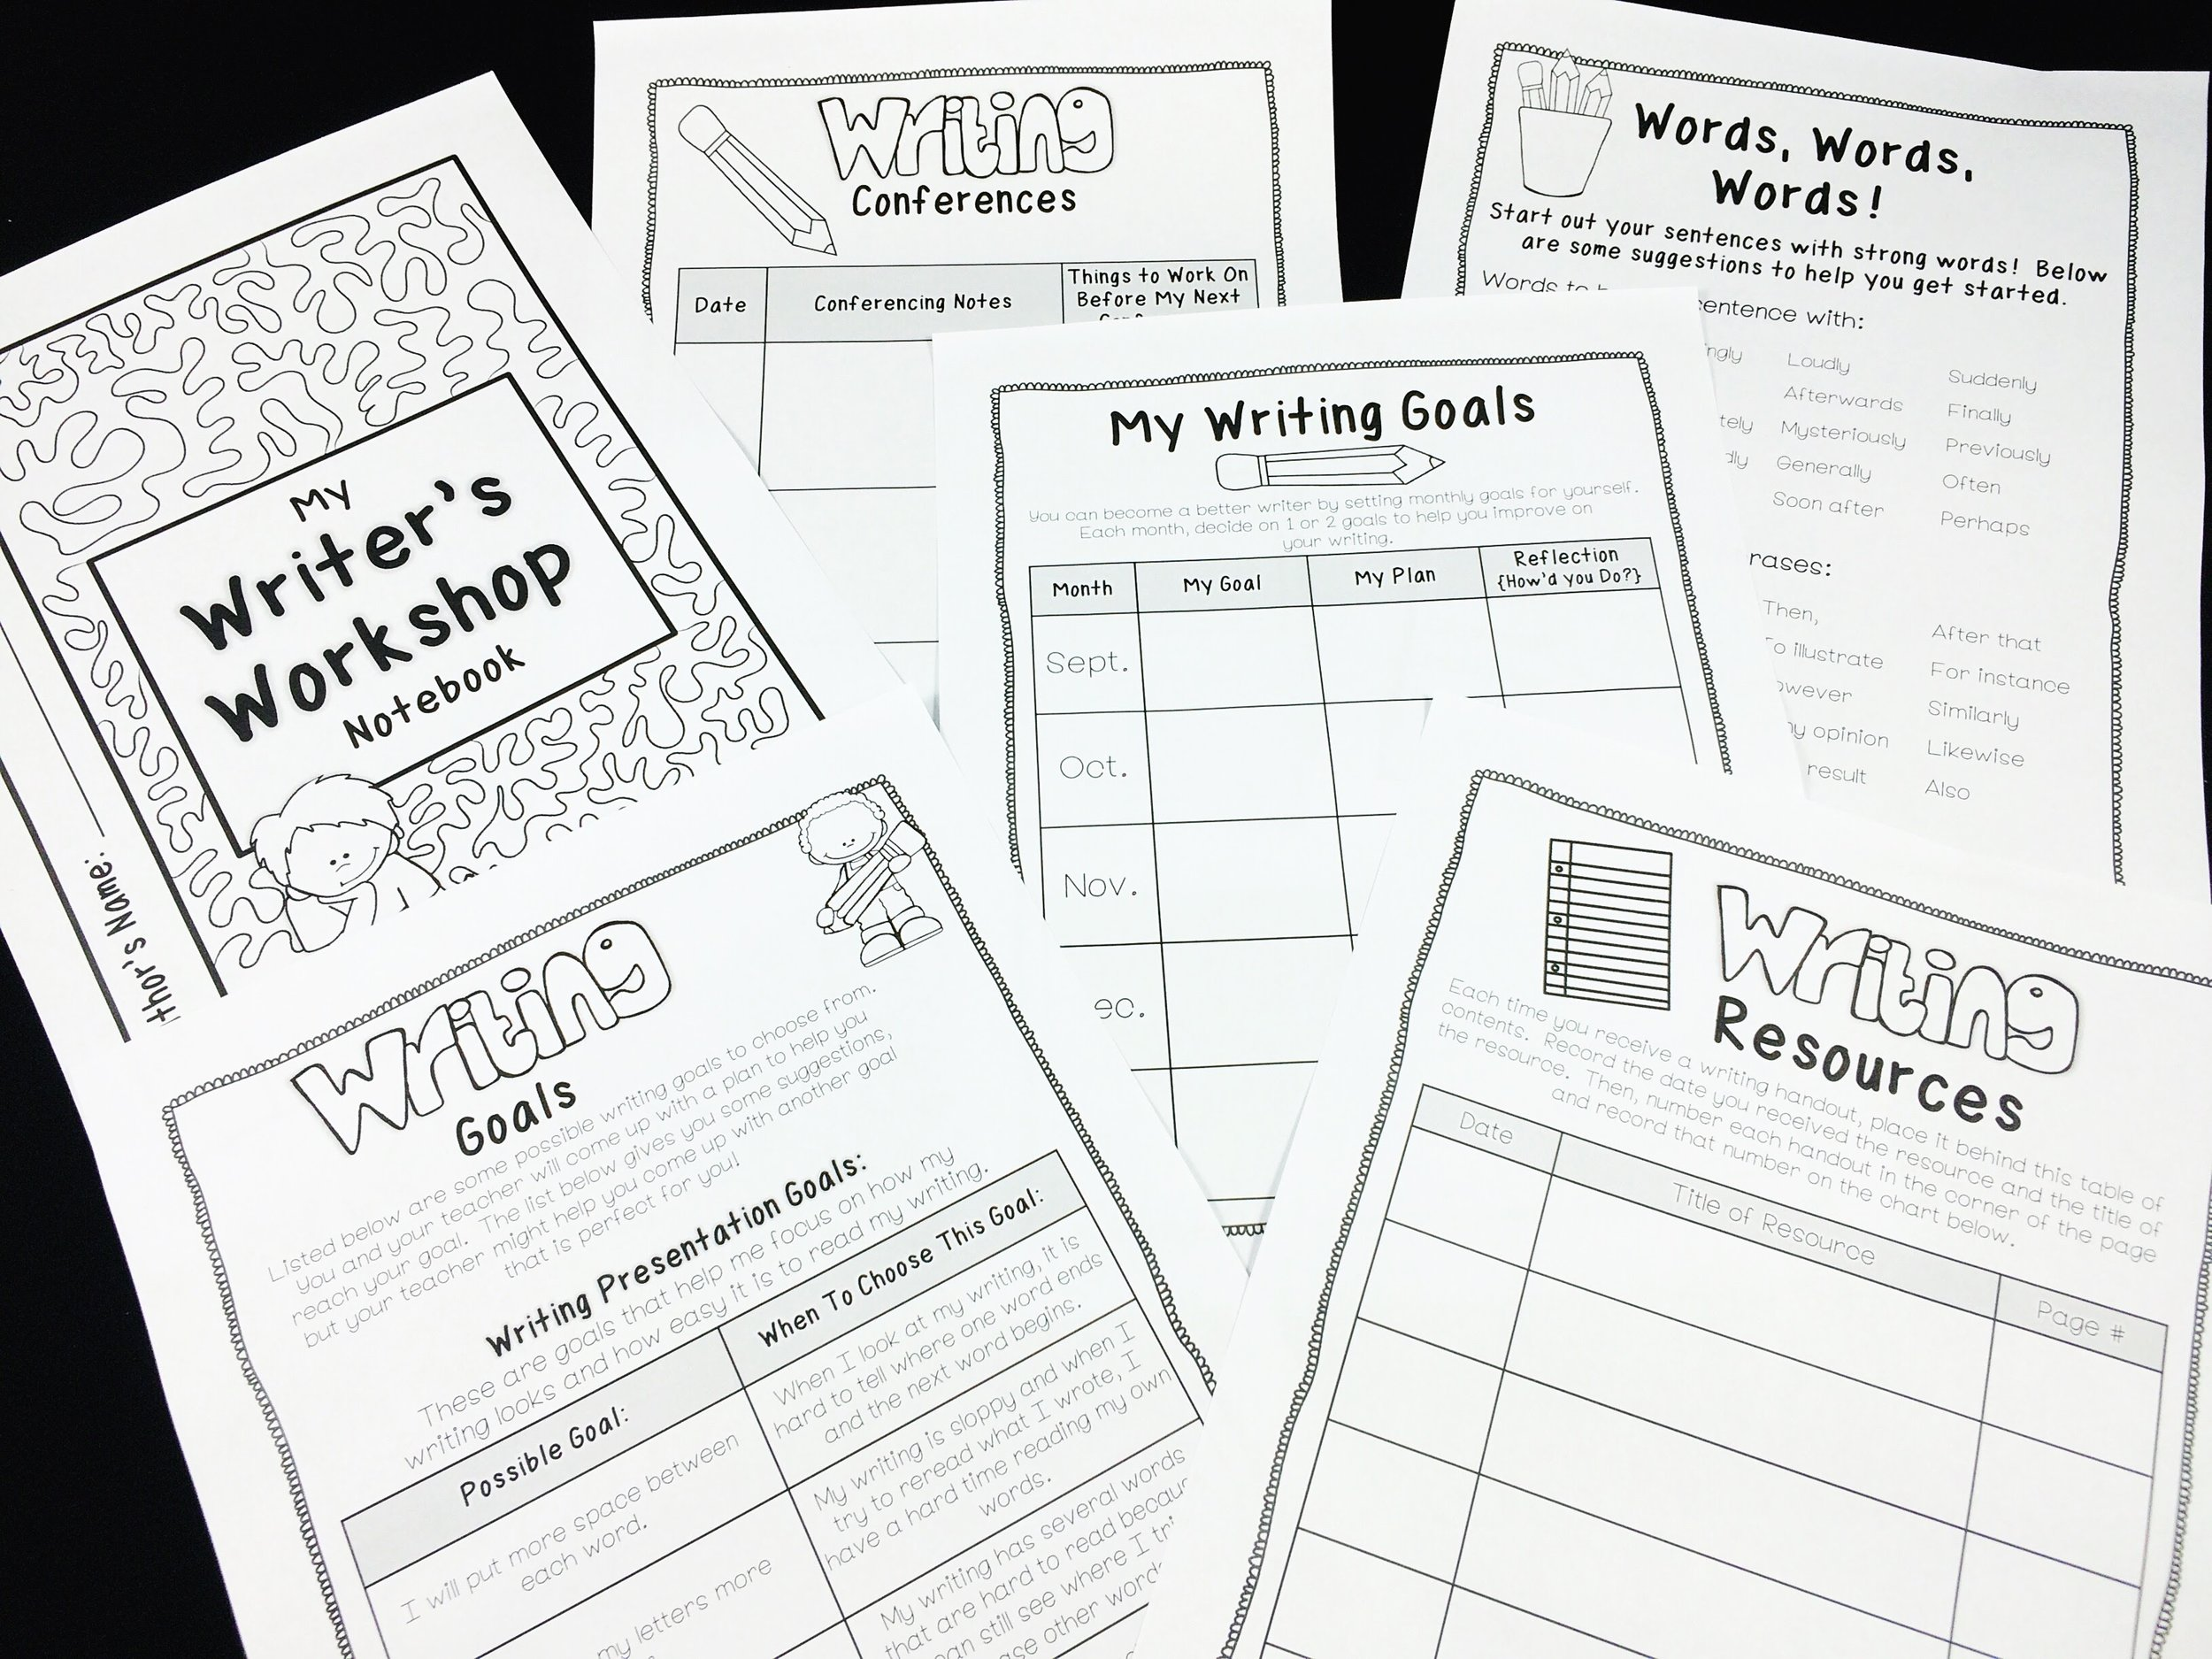 Students keep writing resources such as their writing goals, conference notes, and other resources to help them with their writing.